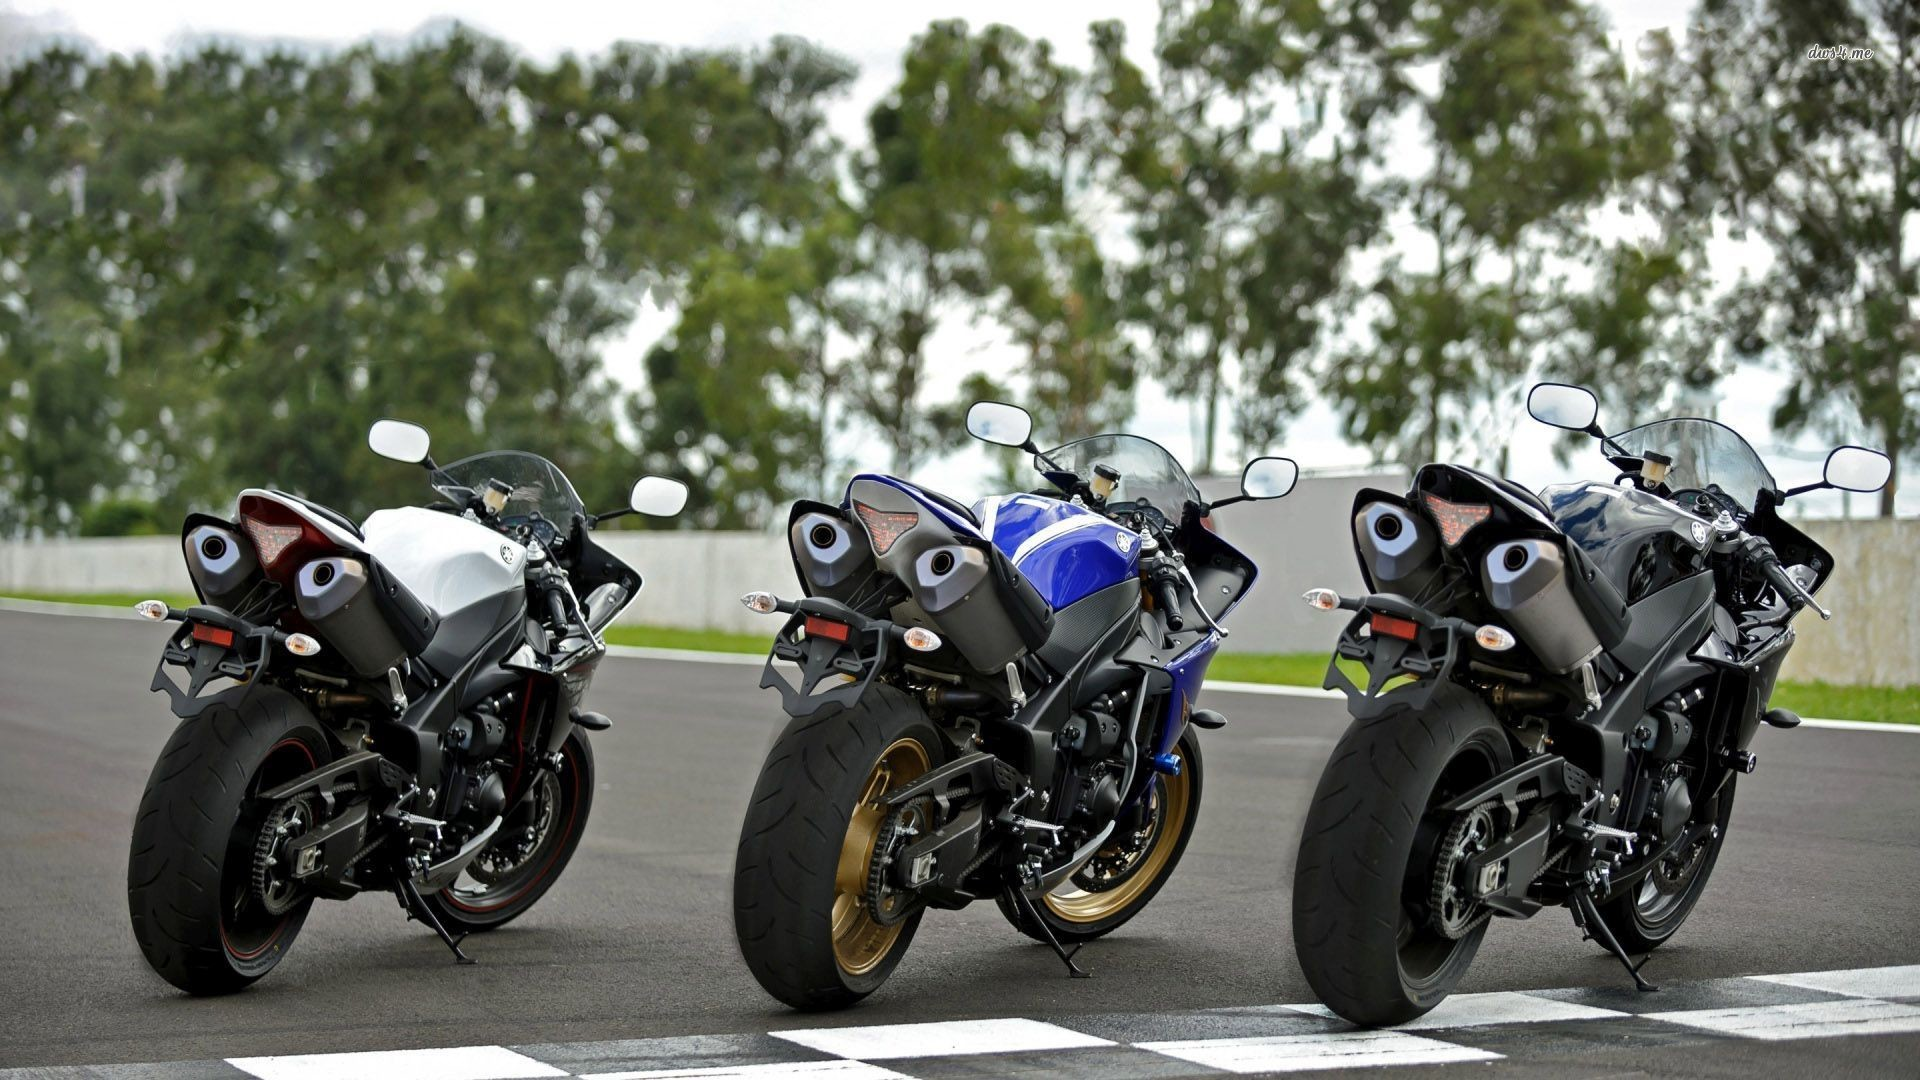 Res: 1920x1080, Yamaha YZF-R1 Wallpapers 18 - 1920 X 1080